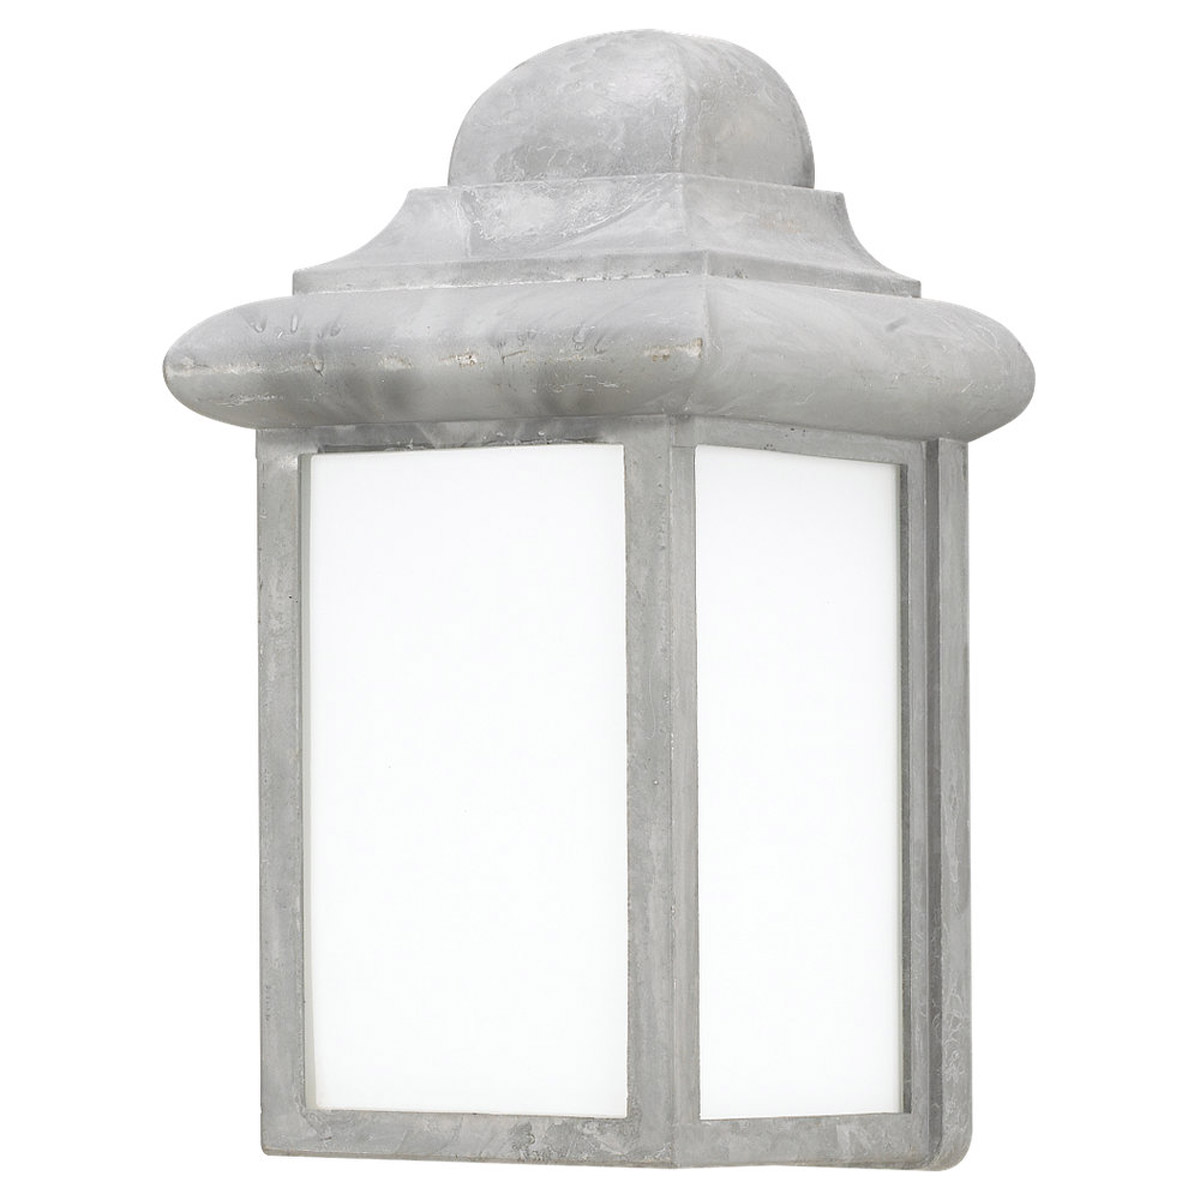 Sea Gull Lighting Mullberry Hill 1 Light Outdoor Wall Lantern in Pewter 8988PBLE-155 photo